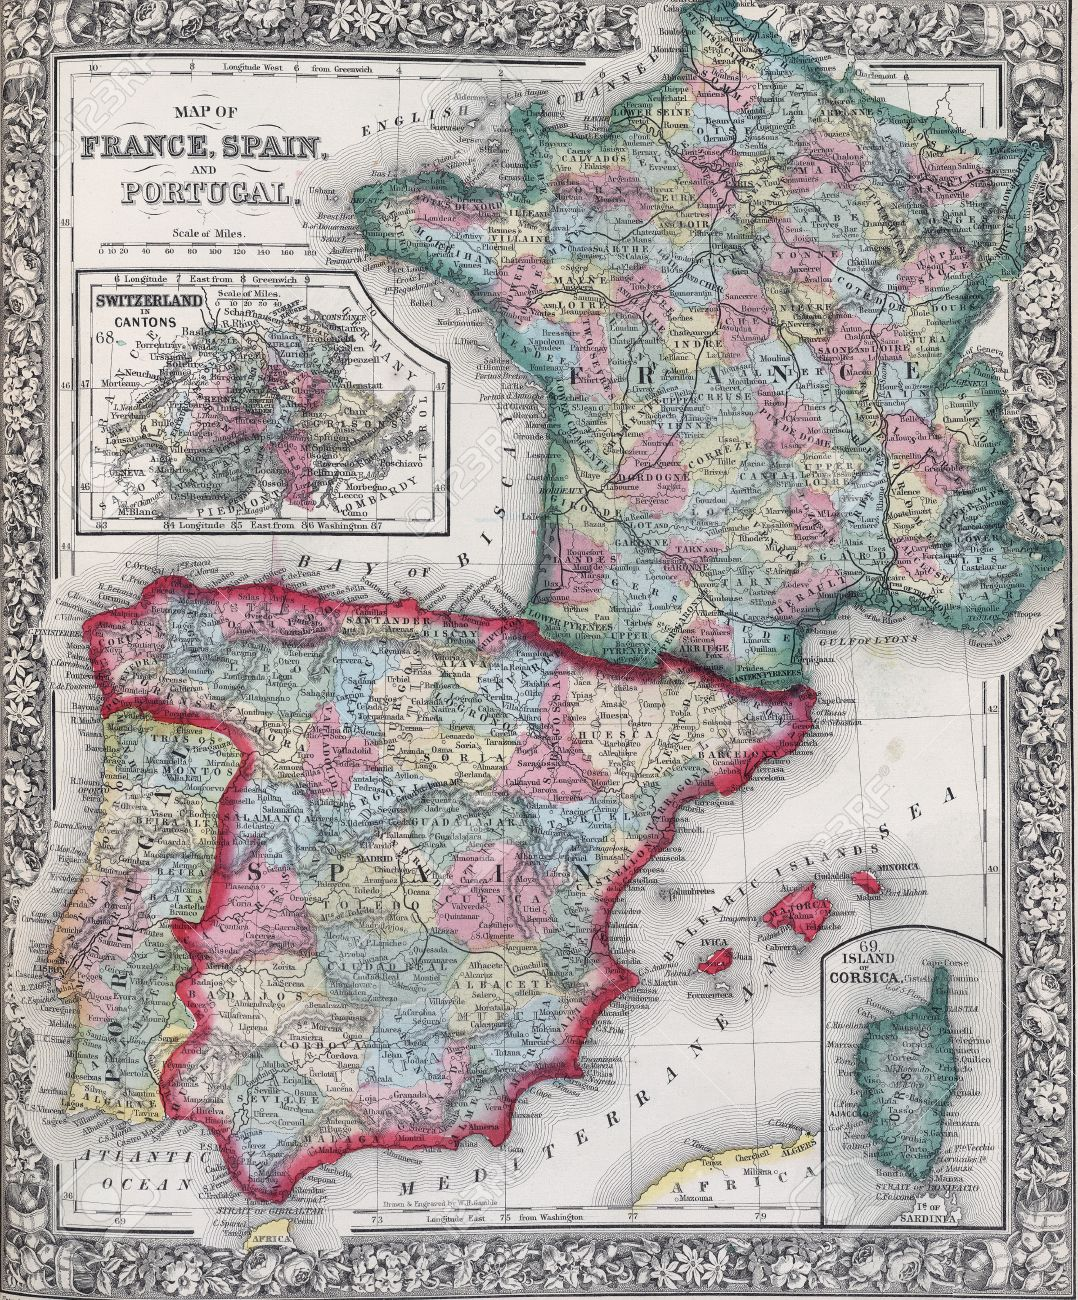 Map Of Spain And France And Portugal.Antique Map Of Spain France And Portugal From 19th Century Atlas